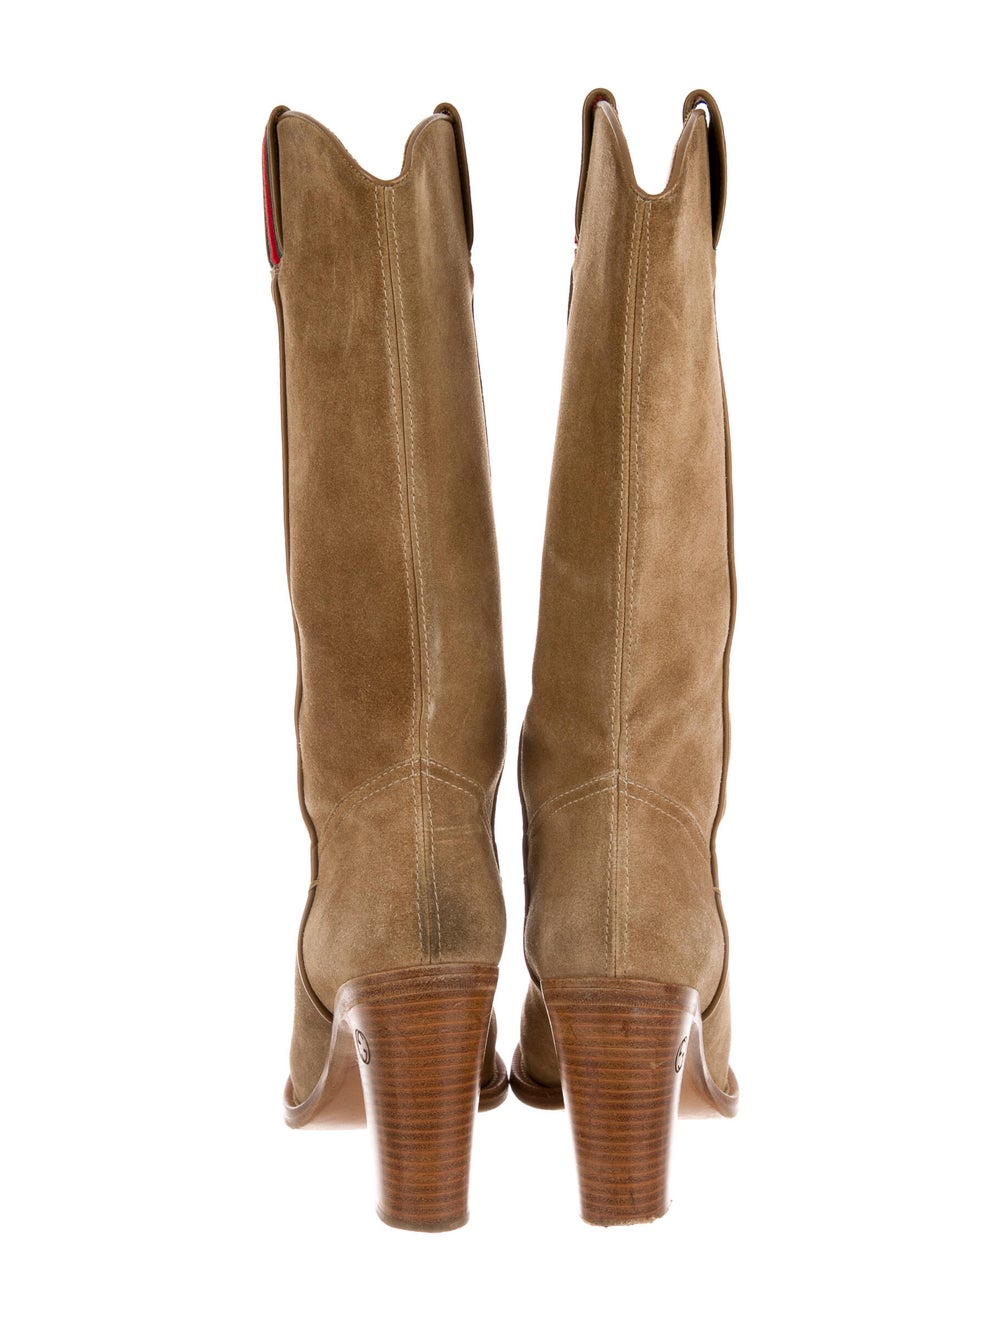 Gucci Suede Western Boots - image 4